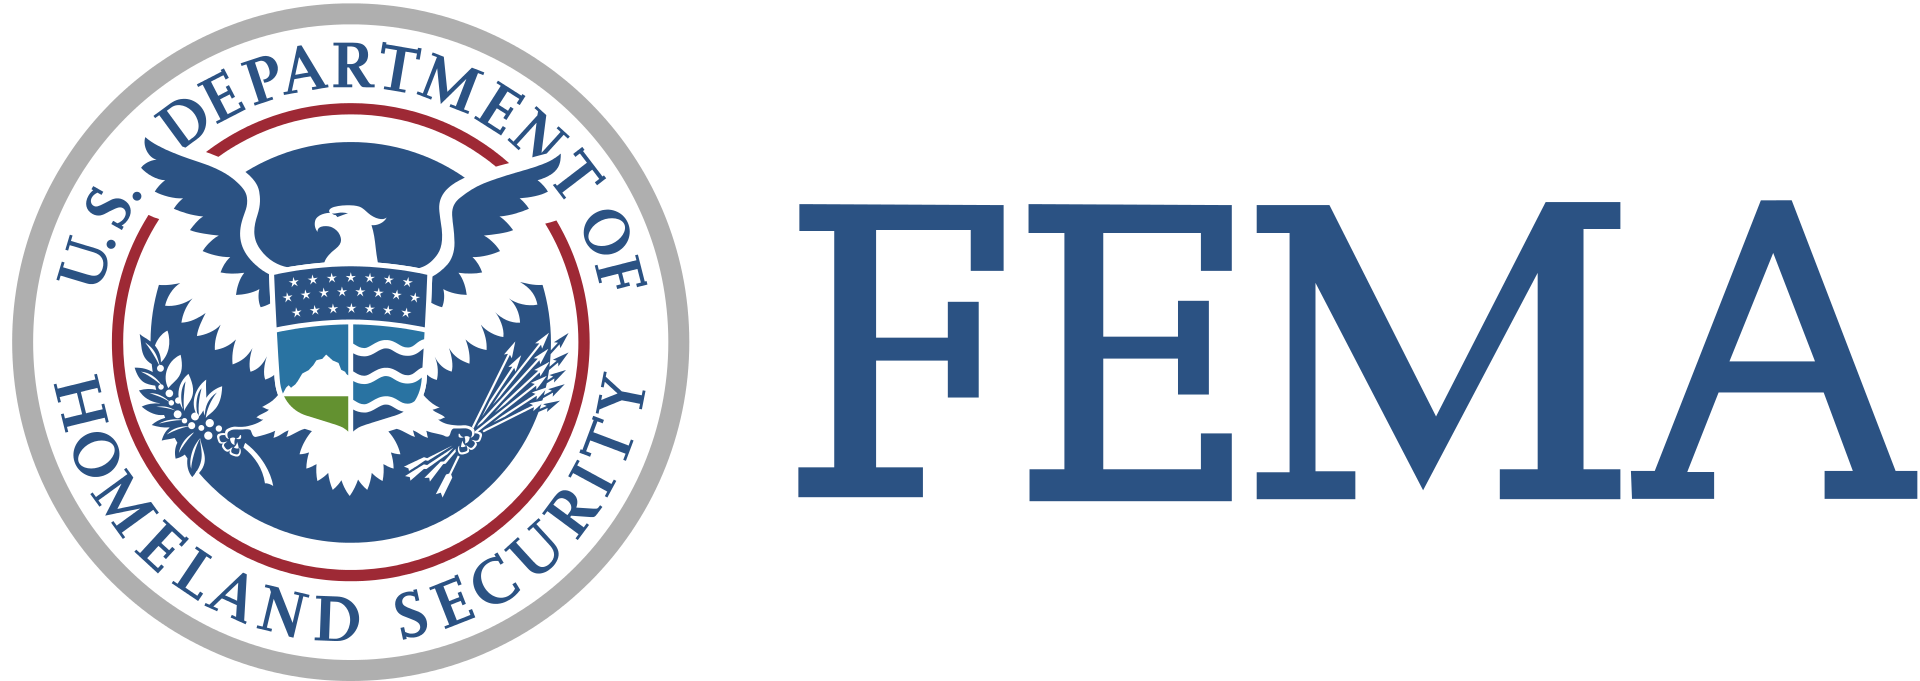 Supports FEMA's Modeling and Data Working Group (MDWG) that maintains Model and Data Inventory (MoDI). The MoDI enables planners to pre-identify what data and tools should be used during the lifecycle of disaster response and recovery. Implemented innovative digital library for FEMA with enhanced search engine using Open Source Technology (Hadoop Distributed File System – HDFS, ElasticSearch, Pentaho Data Integration). Reduced FEMA Internal Data Requests (IDRs) by over 50% so far and supported reduction of FEMA's Engineering Library warehouse space by 3600 sq. ft. ($1.4M Savings annually).